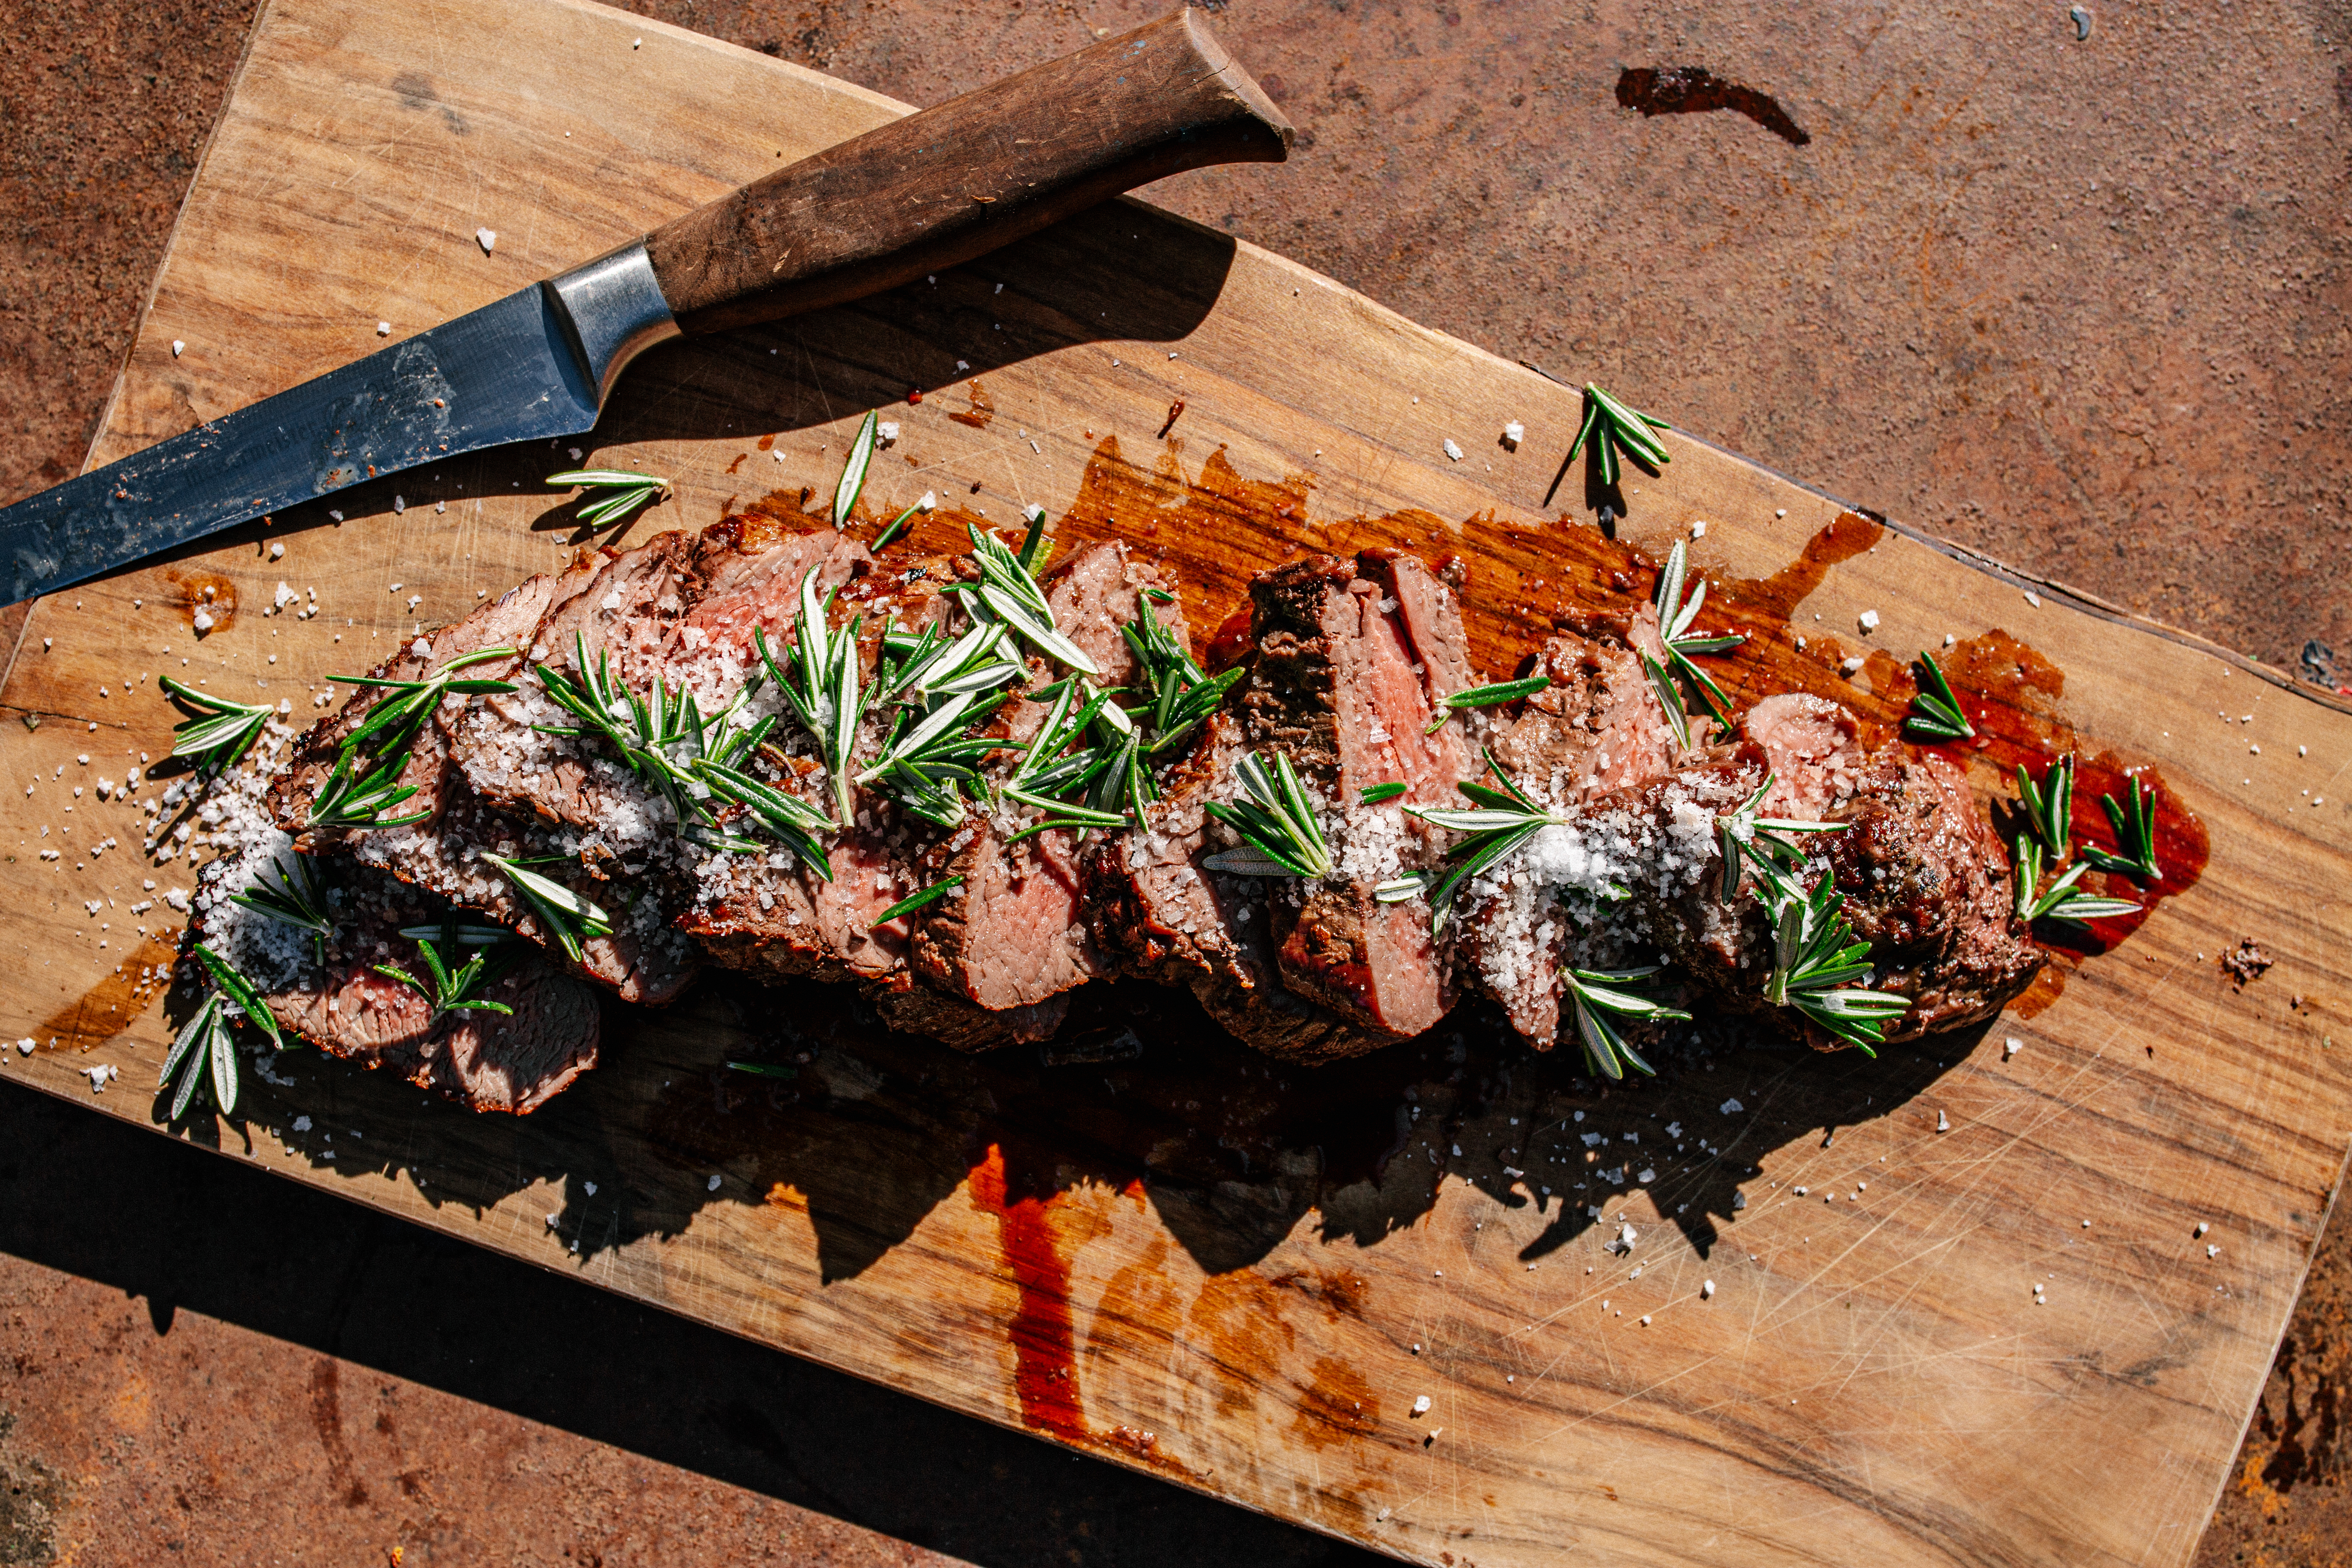 The Best Meat Delivery Services to Get Butcher-Quality Cuts Straight to Your Door